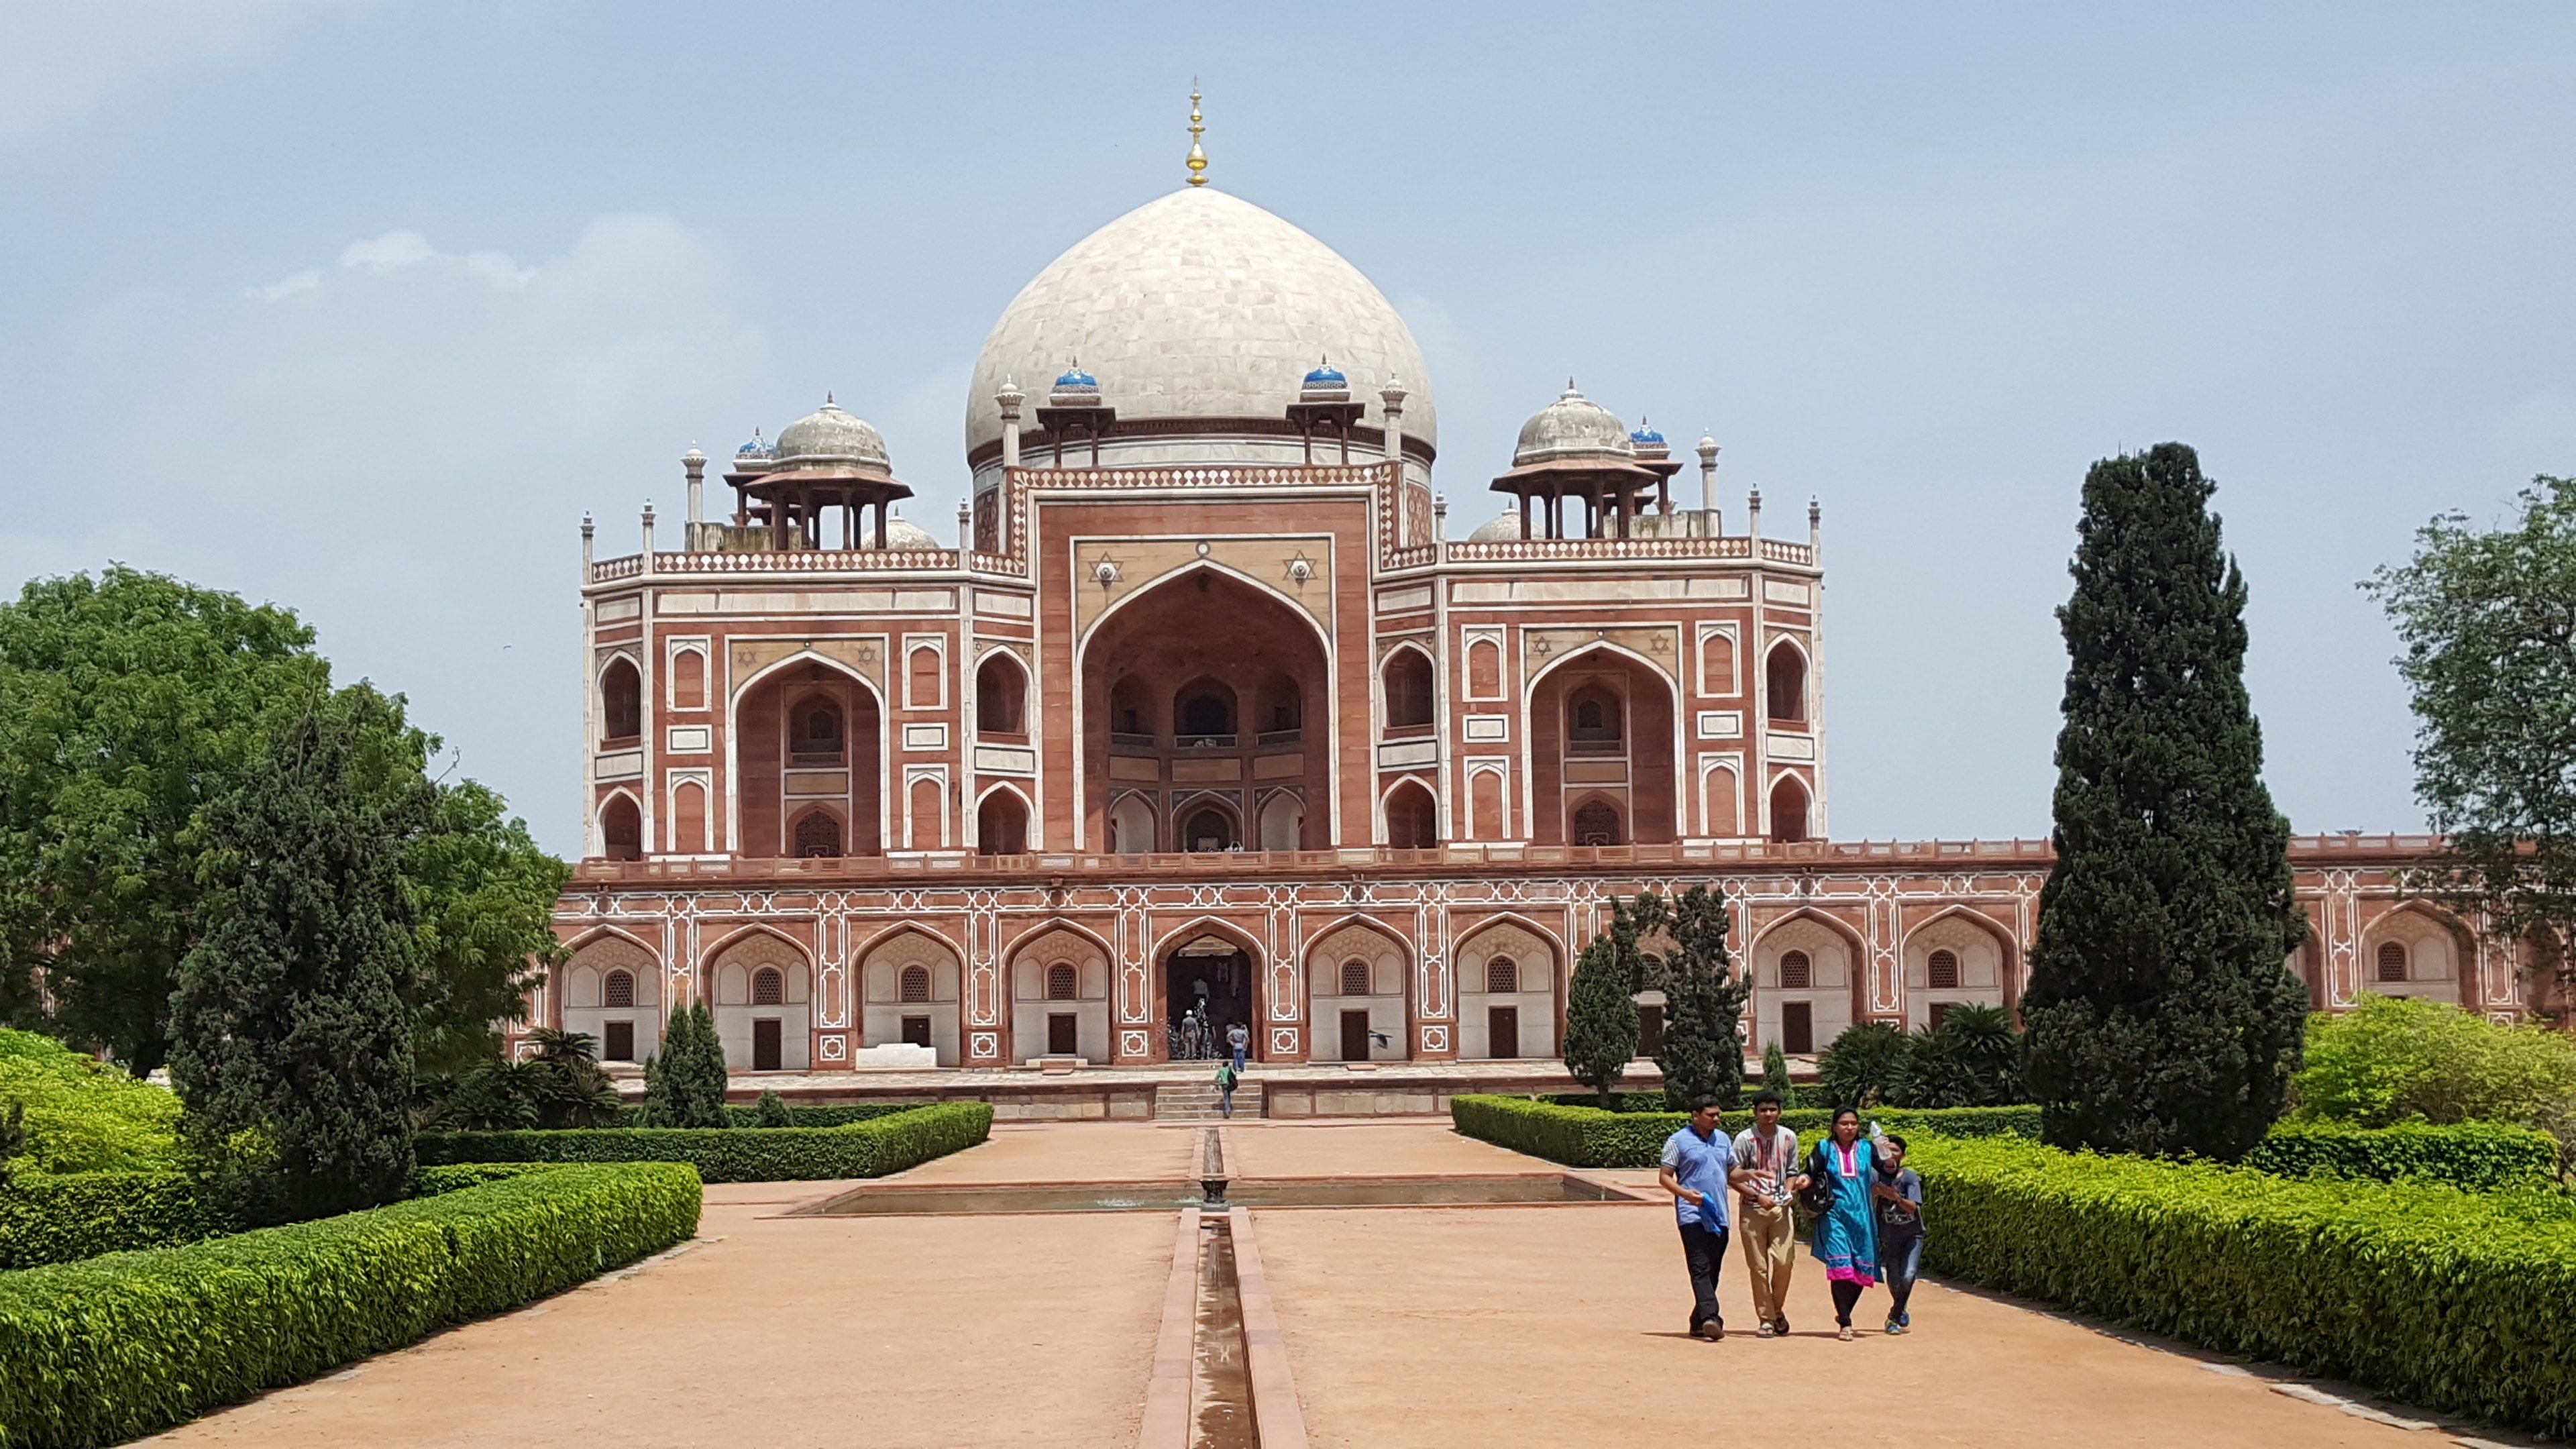 humayuns tomb new delhi 4k wallpapers and backgrounds